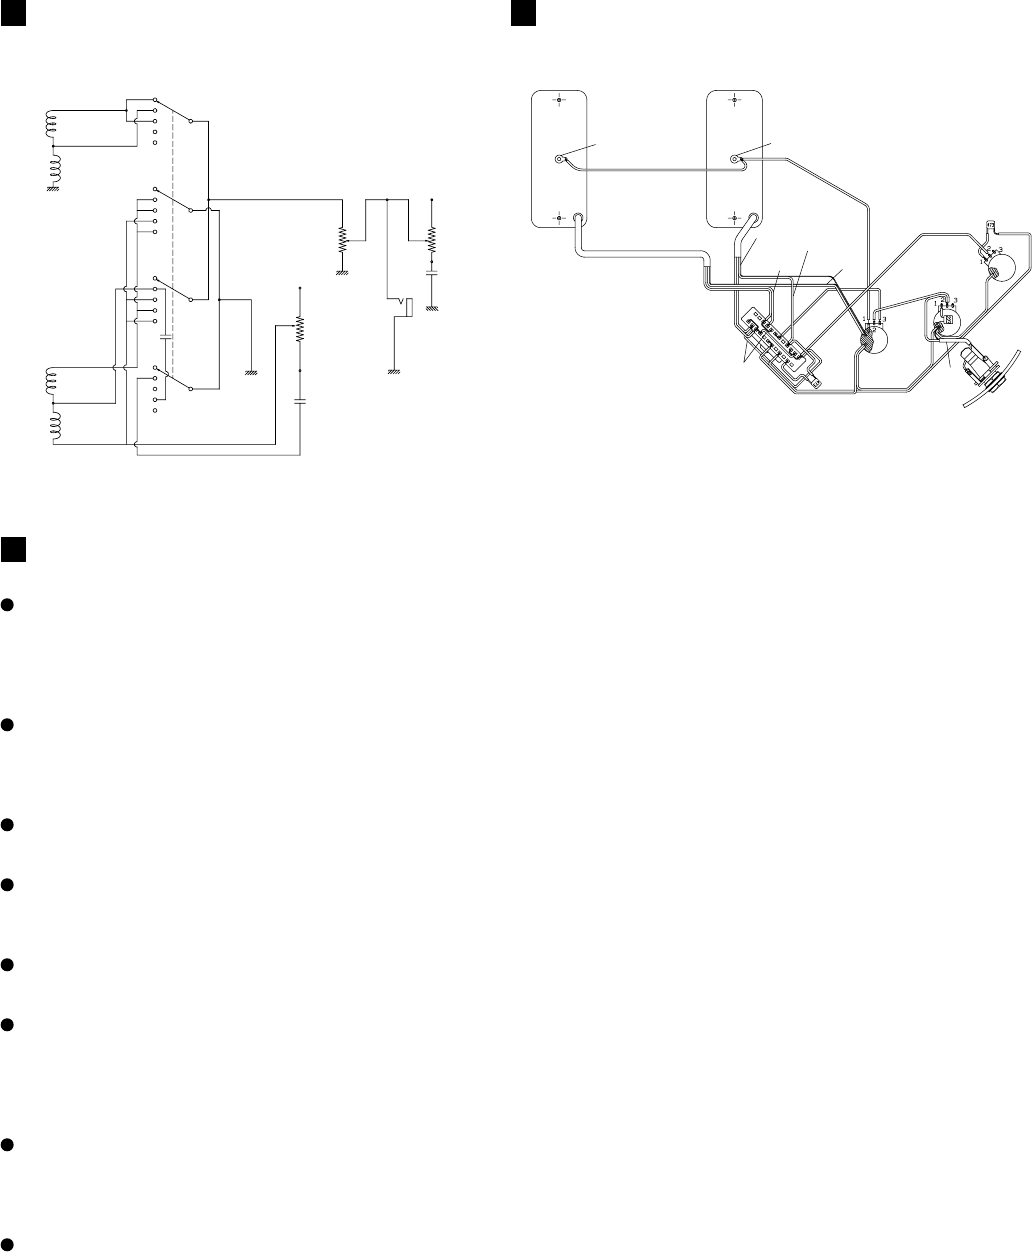 Screw Coilcut Switch Wiring Configuration